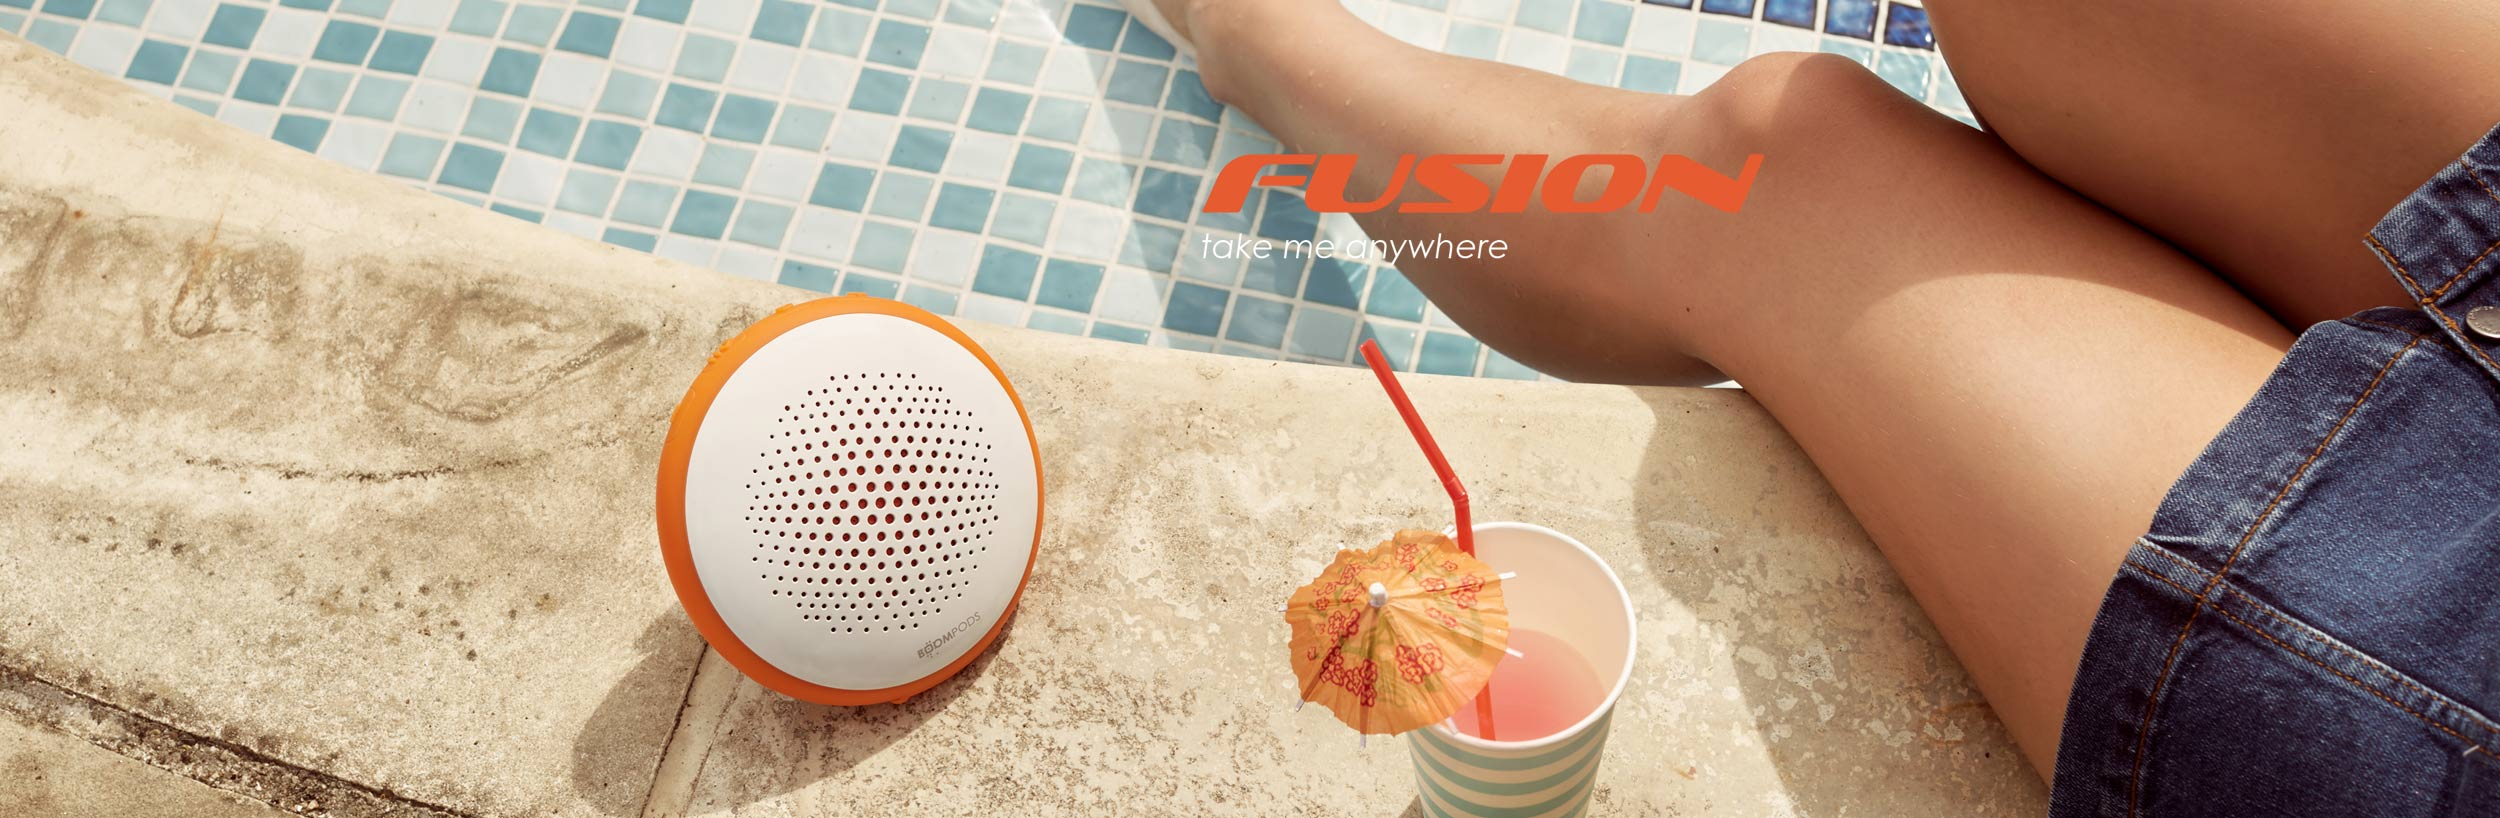 Fusion Wireless Speaker - Take Me Anywhere!